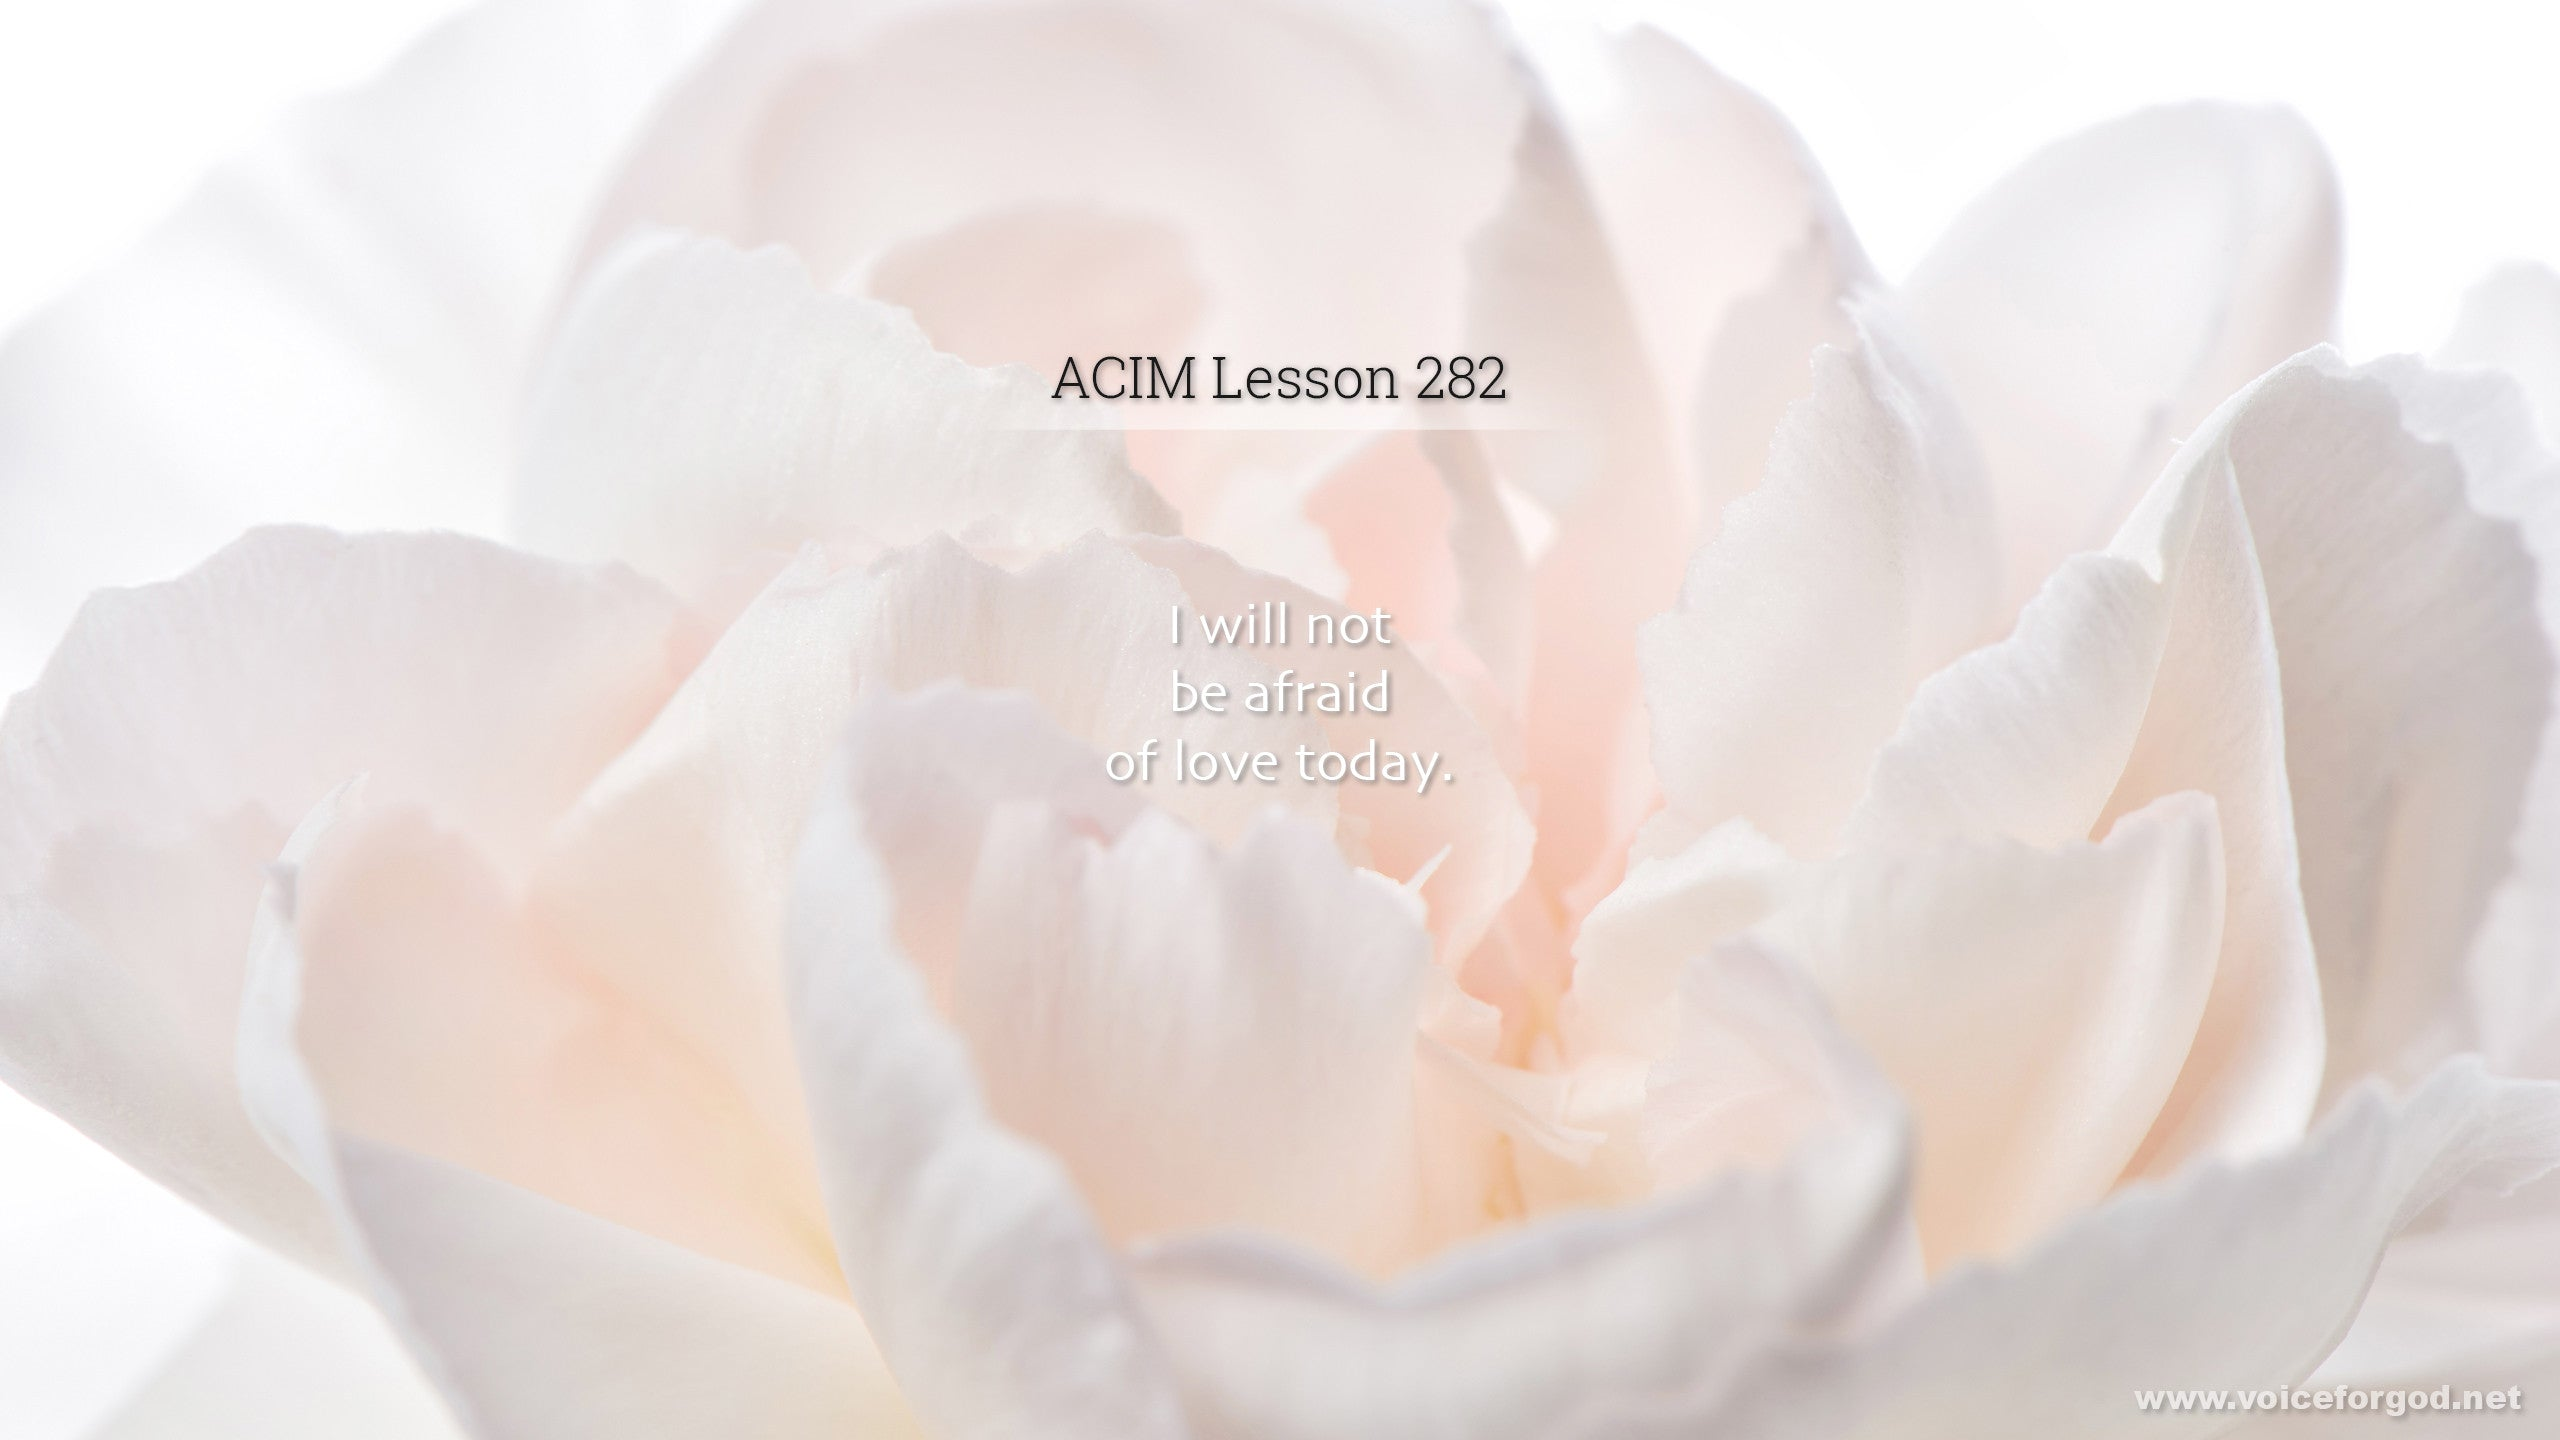 ACIM Lesson 282 - A Course in Miracles Workbook Lesson 282